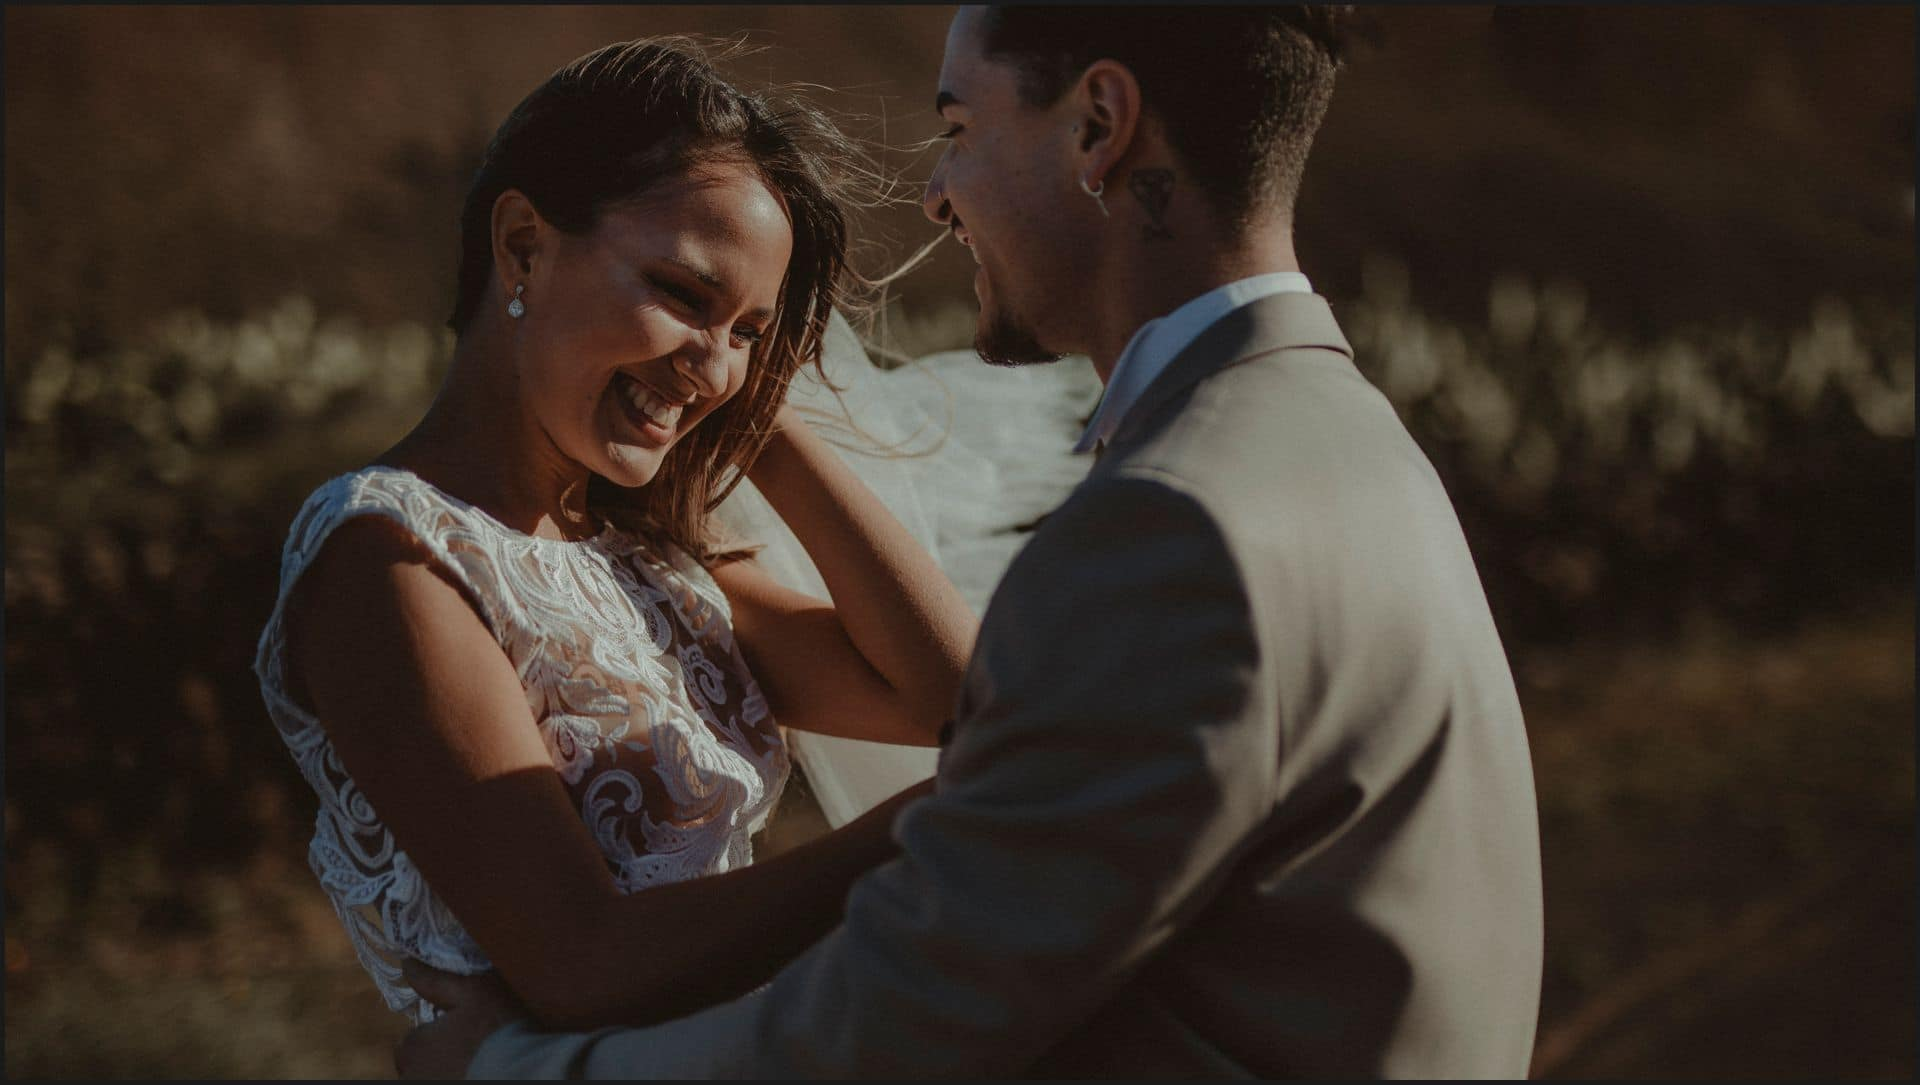 lanzarote, wedding, elopement, bride, groom, funny, smile